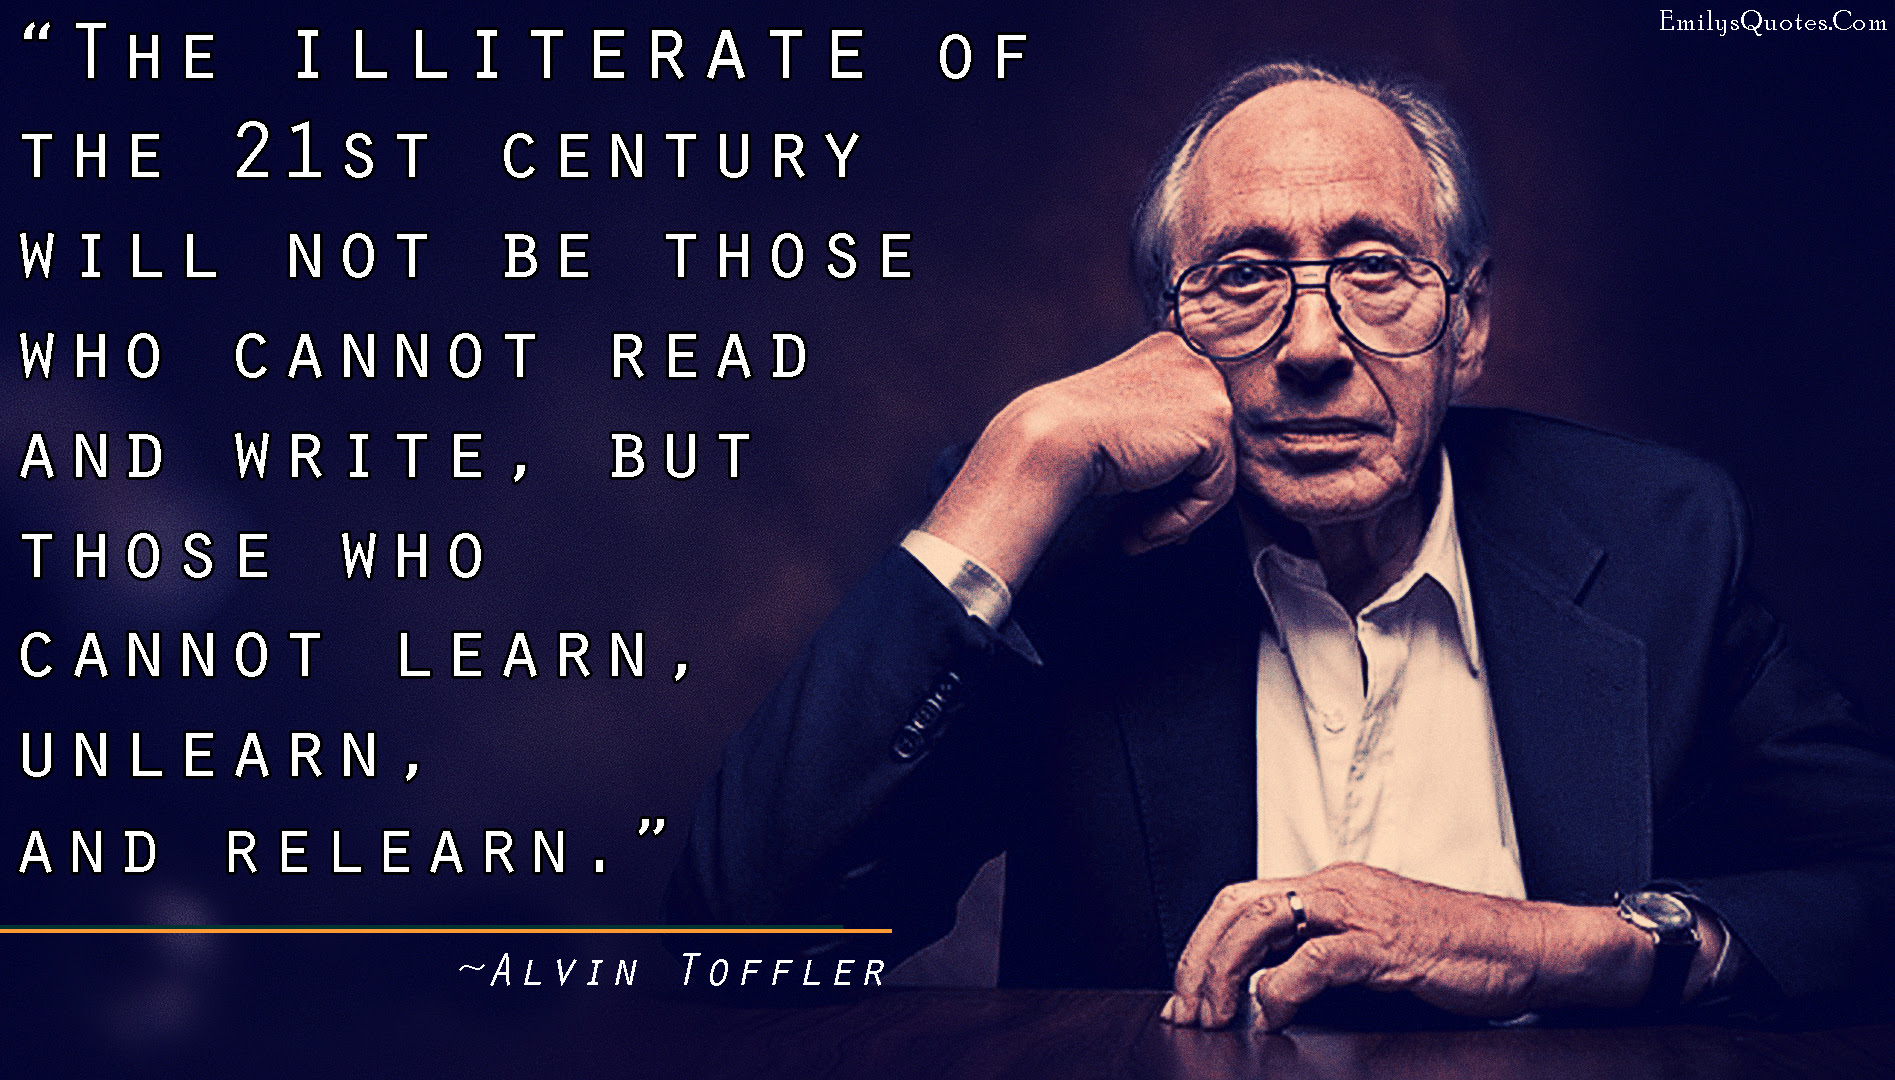 The Illiterate Of The 21st Century Will Not Be Those Who Cannot Read